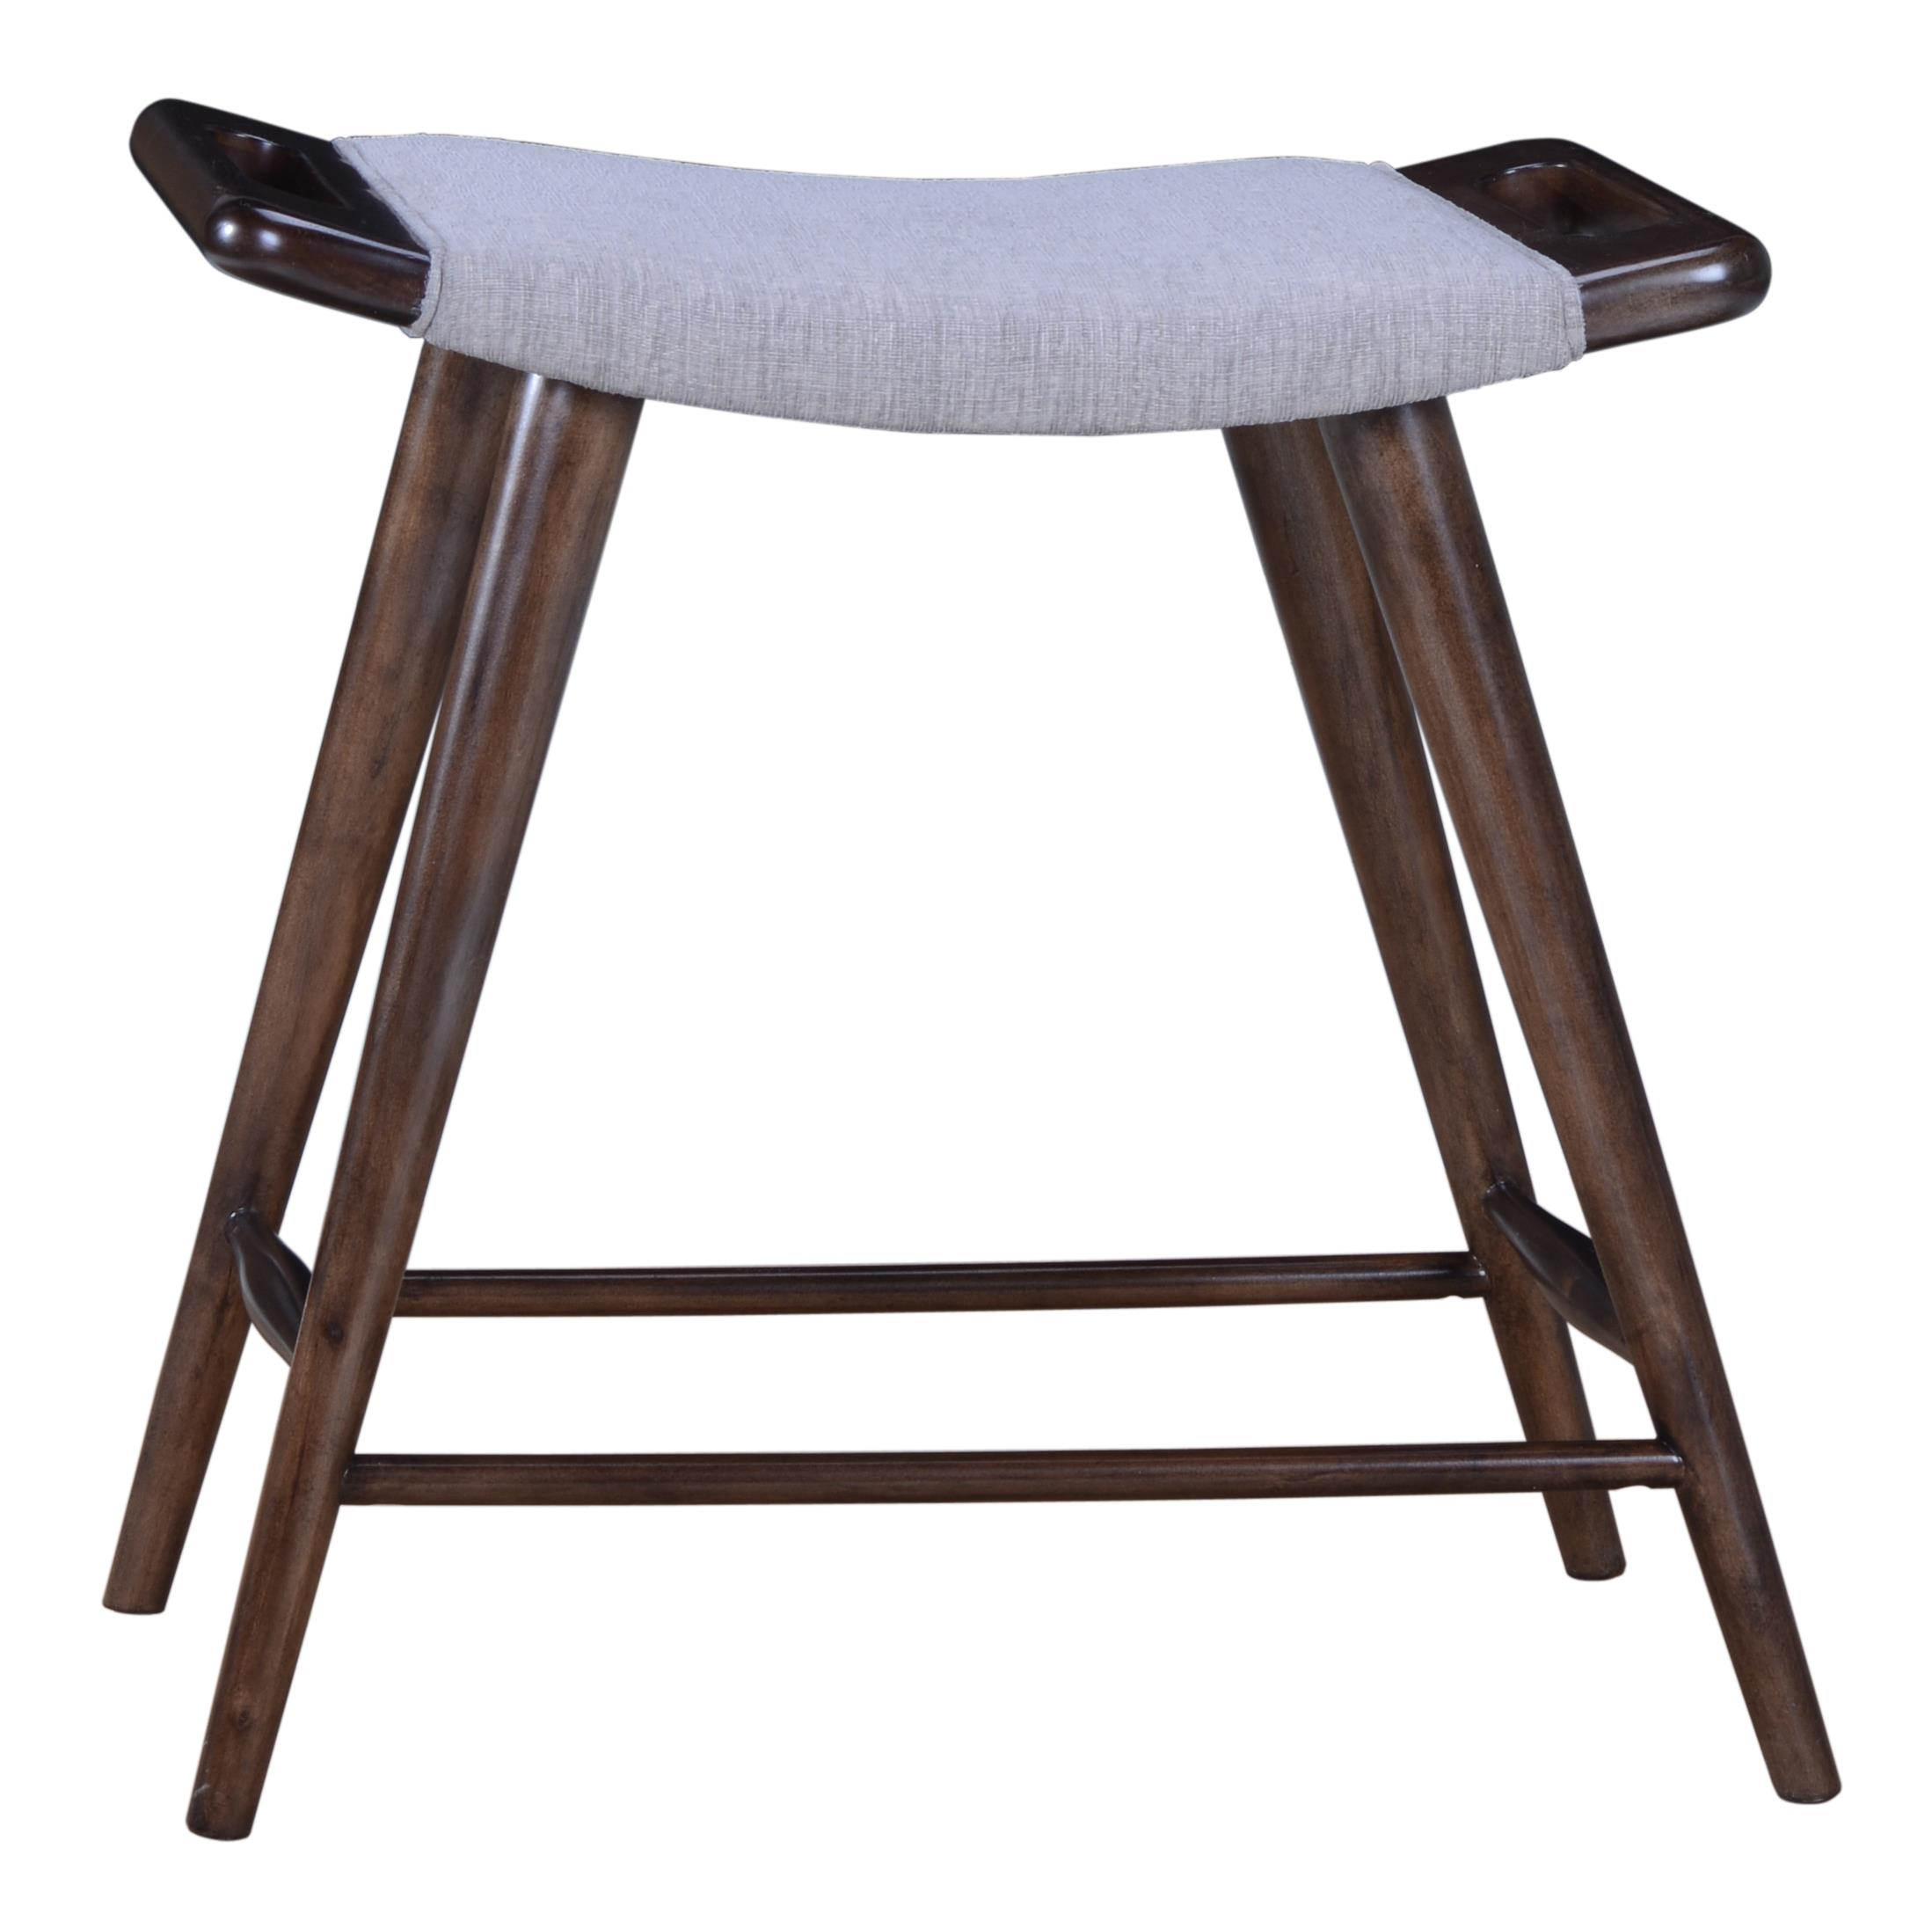 Belfort Signature Urban Treasures 14th and U High Dining Stool - Item Number: 223209-1812